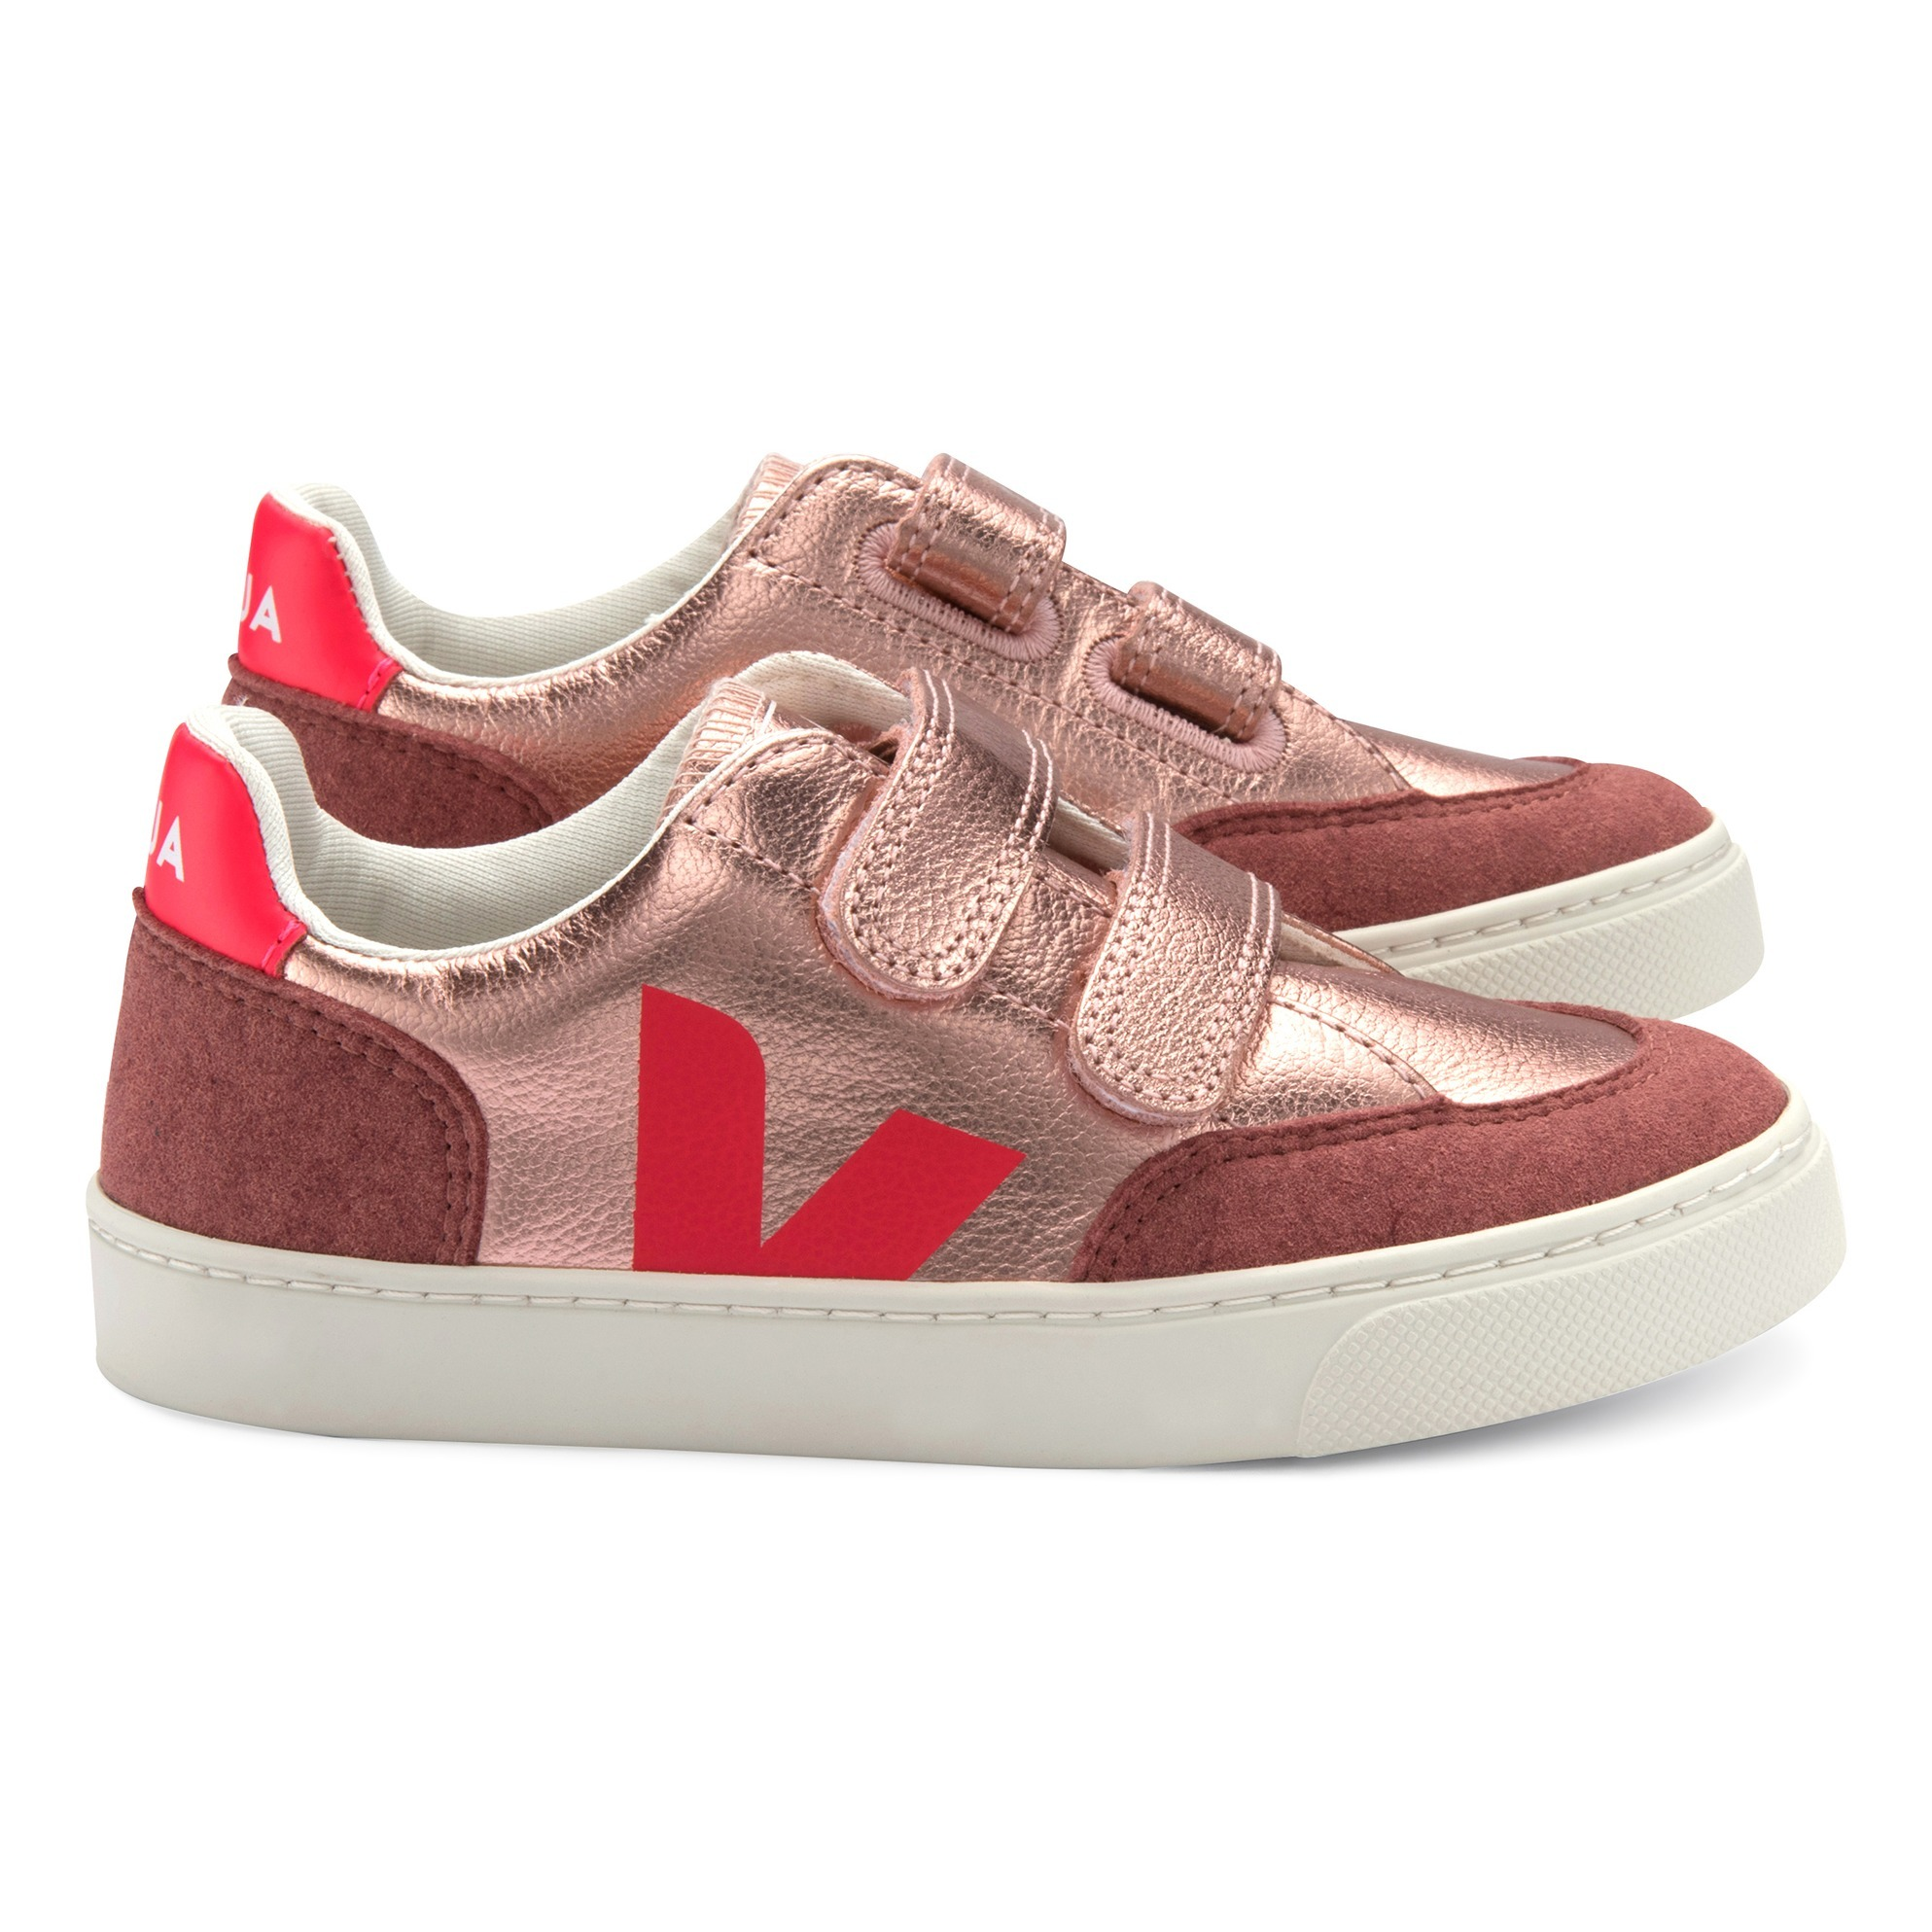 Veja I New Collection I Smallable